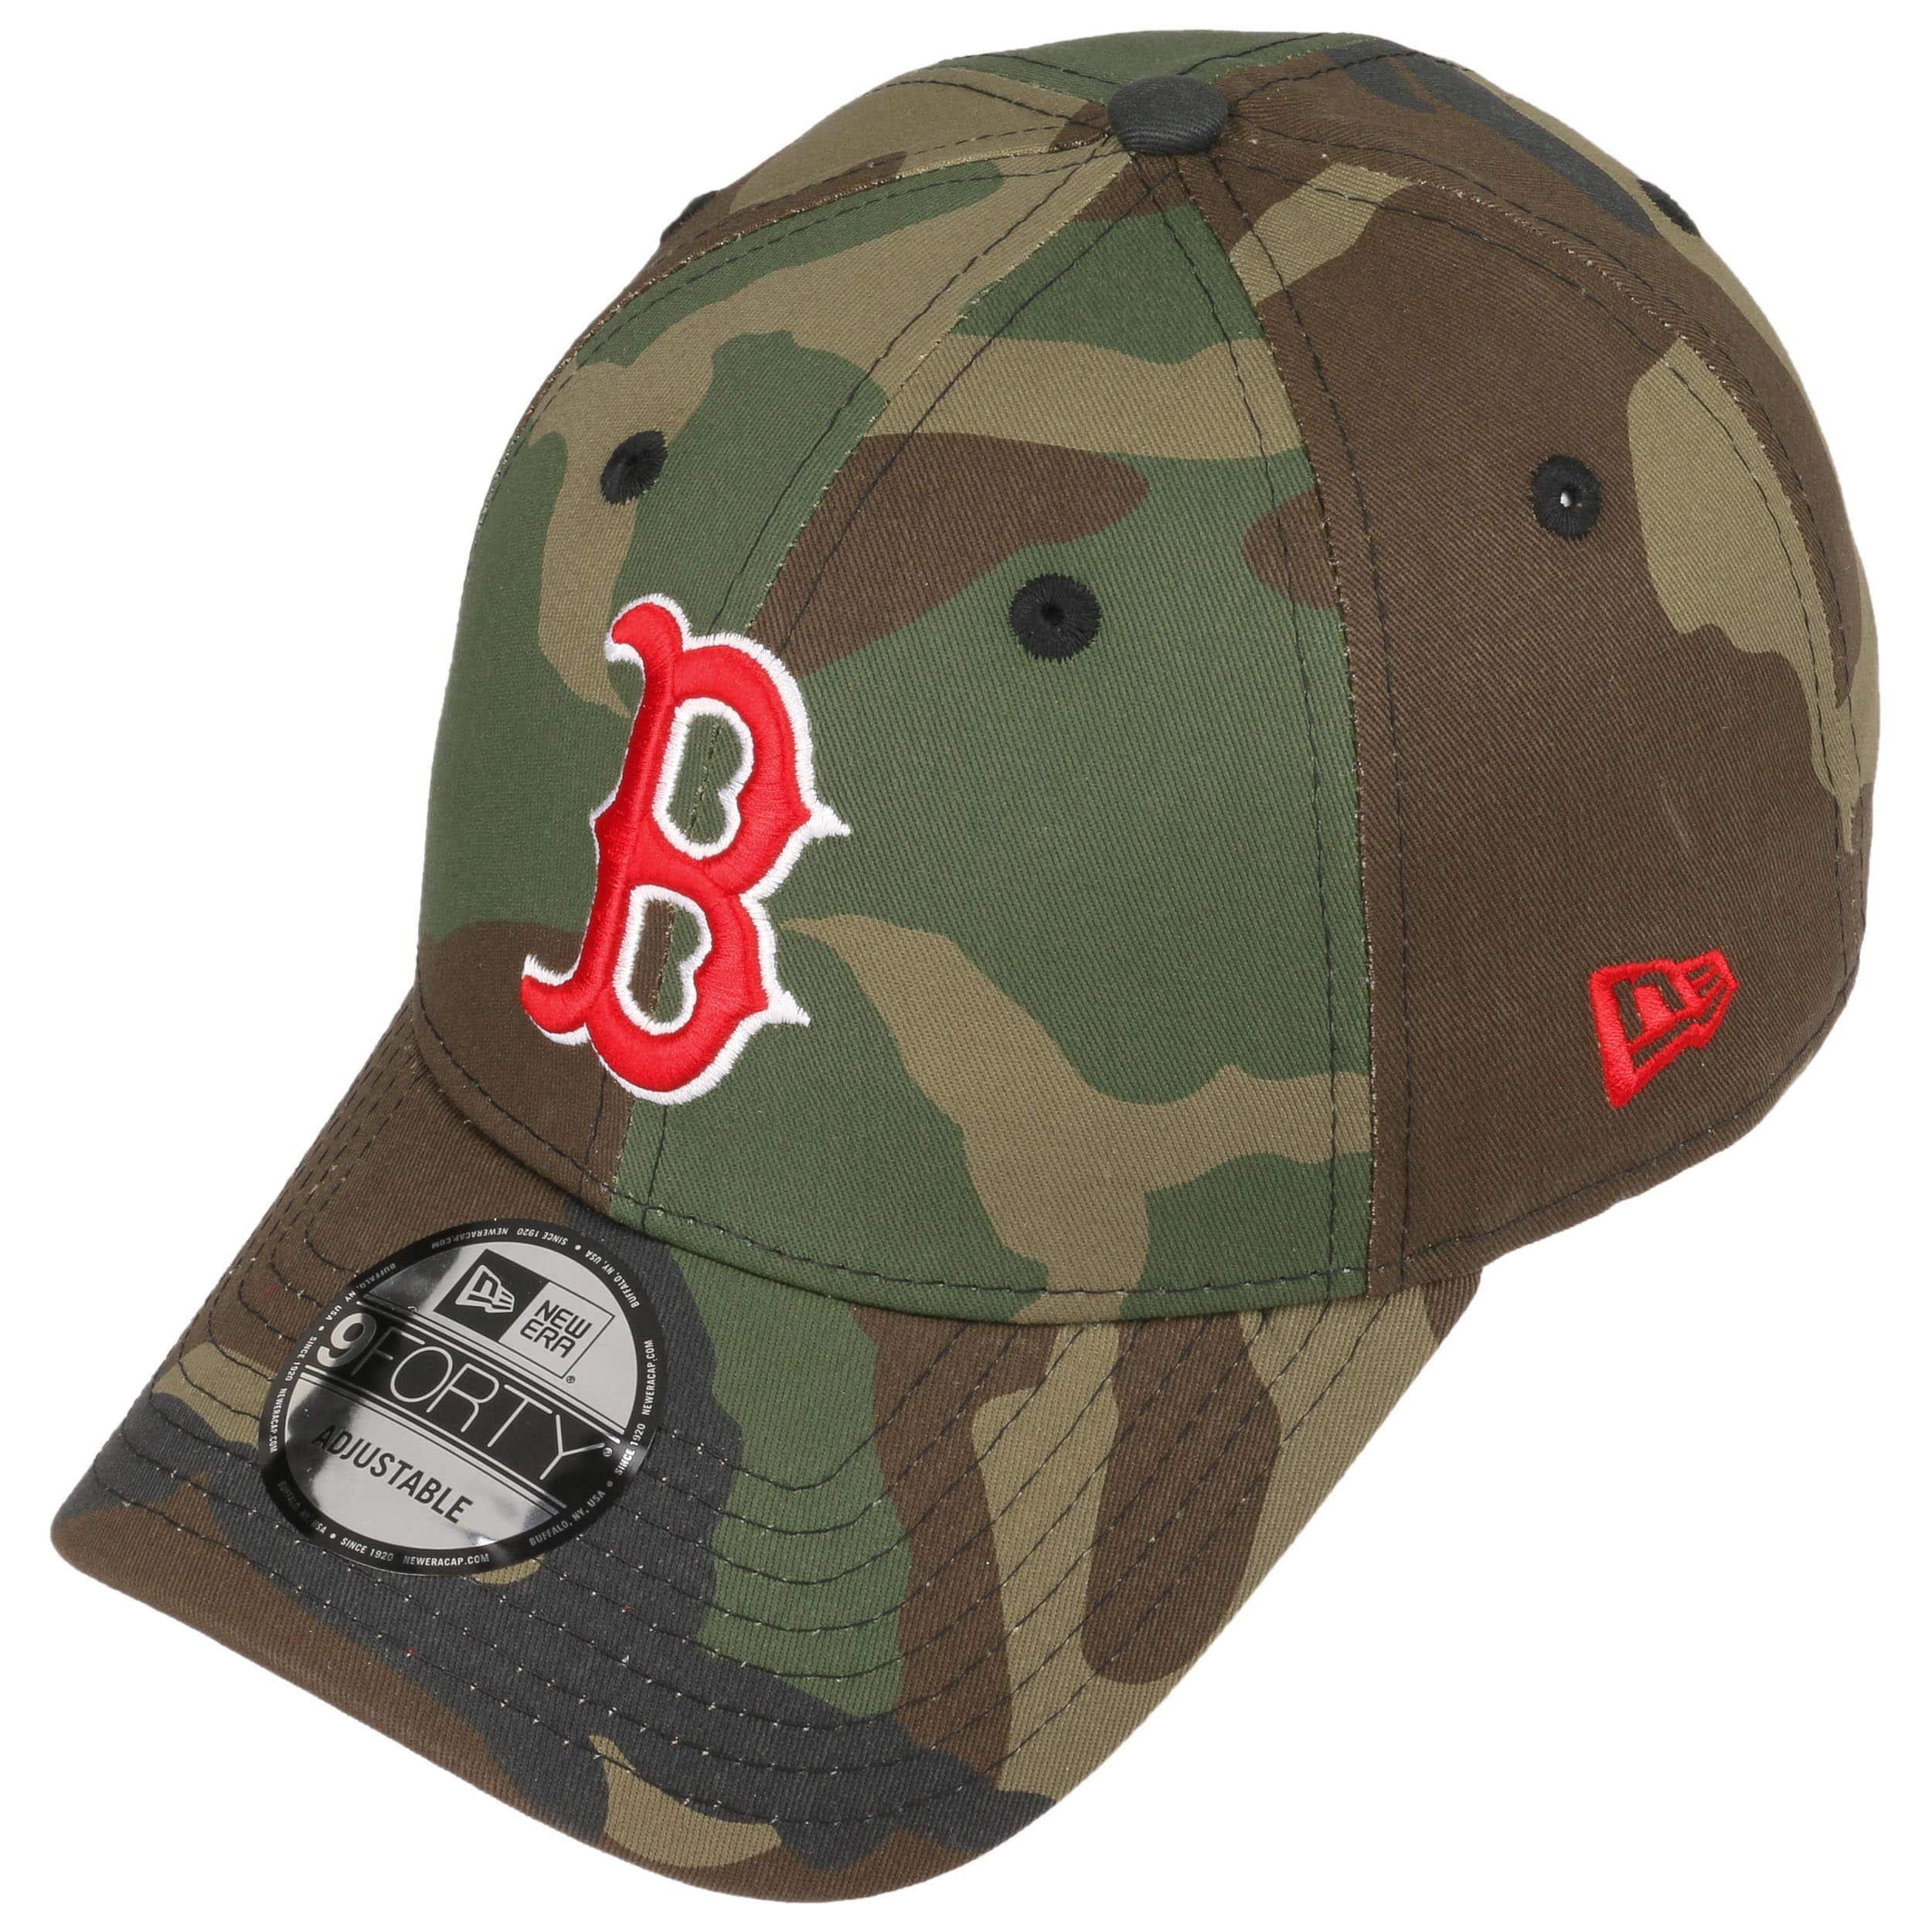 ... best price 9forty camo team red sox cap by new era 1 ae989 45498 5a9c053c1411